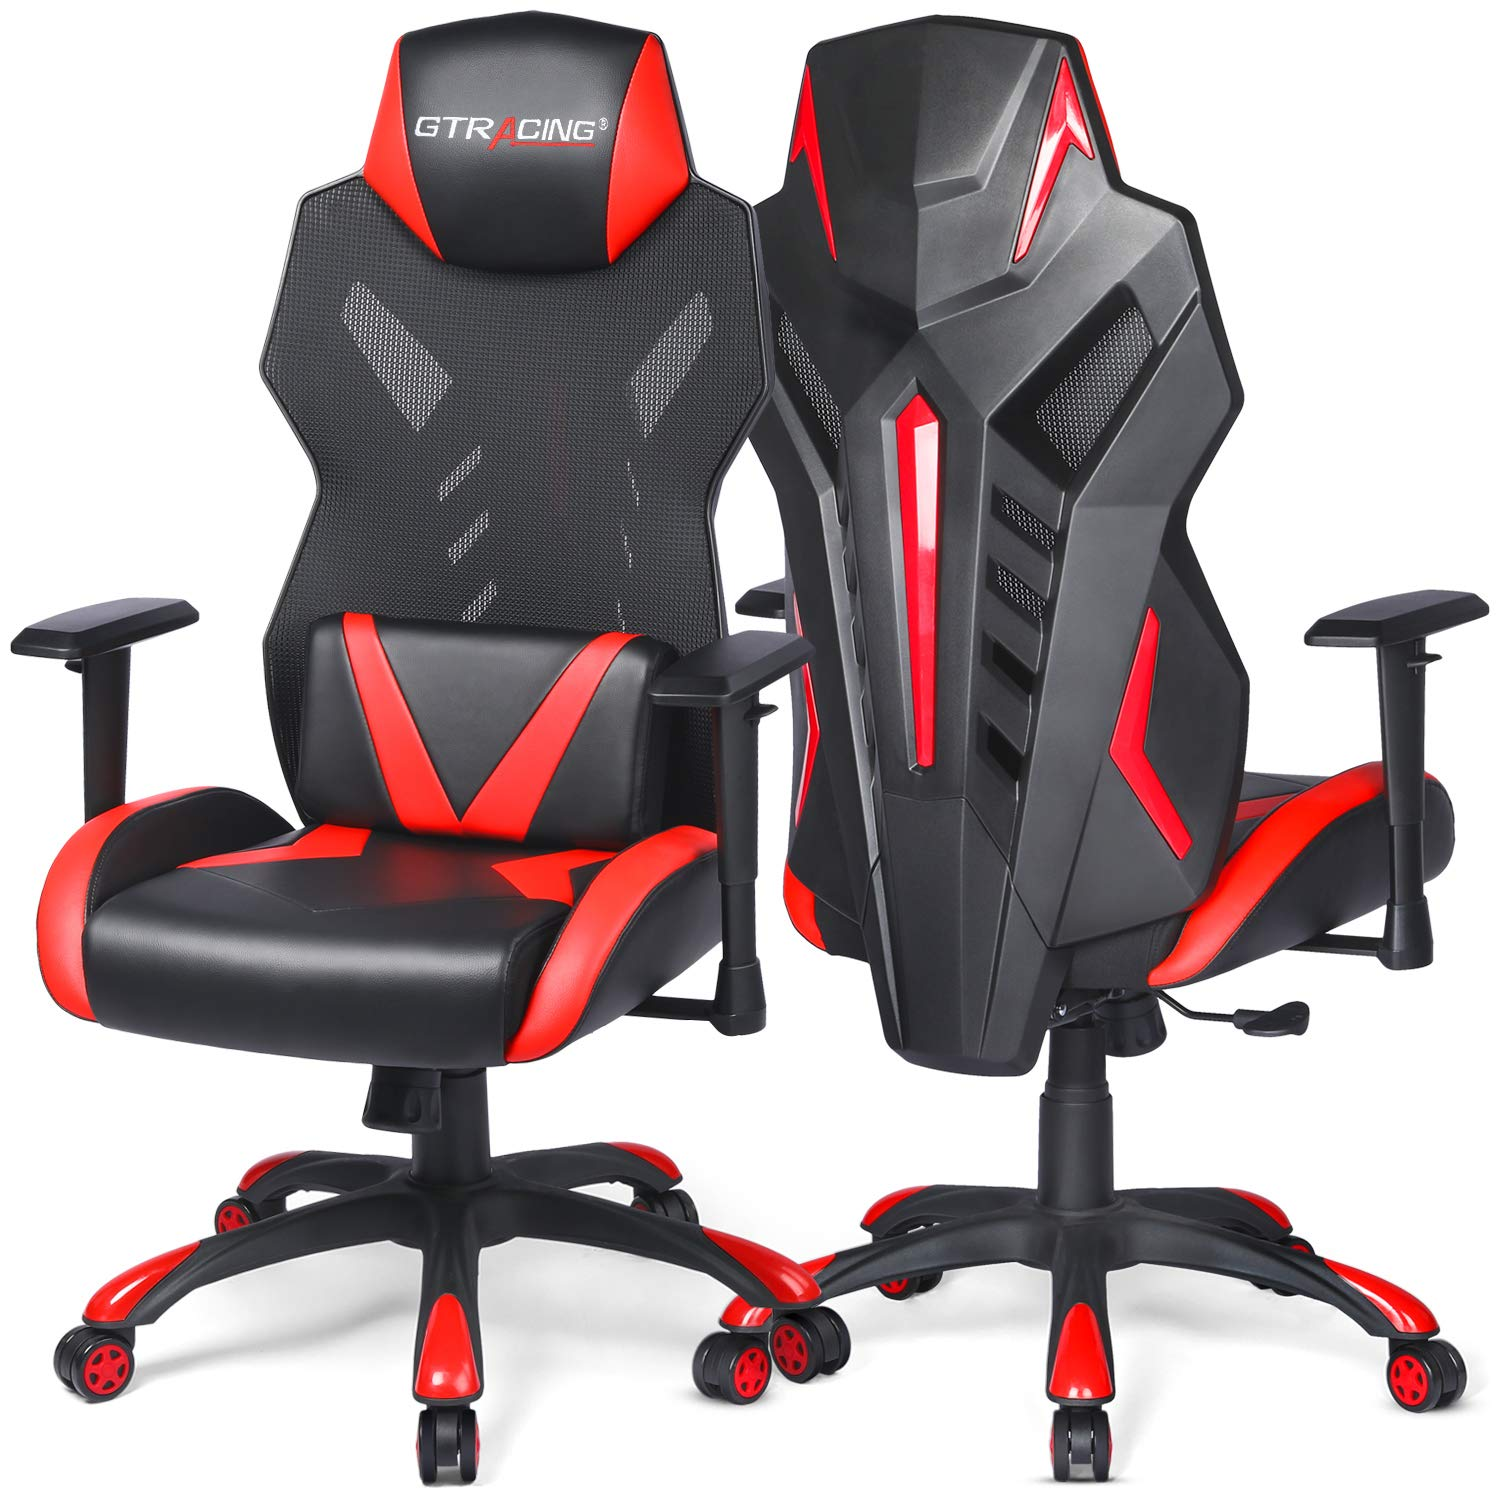 Picture of: Gtracing Gaming Chair Mesh Racing Style Office Chair High Back Computer Desk Chair Ergonomic Swivel Chair Adjustable Seat Cushion Headrest Breathable Back Red 1 Pack